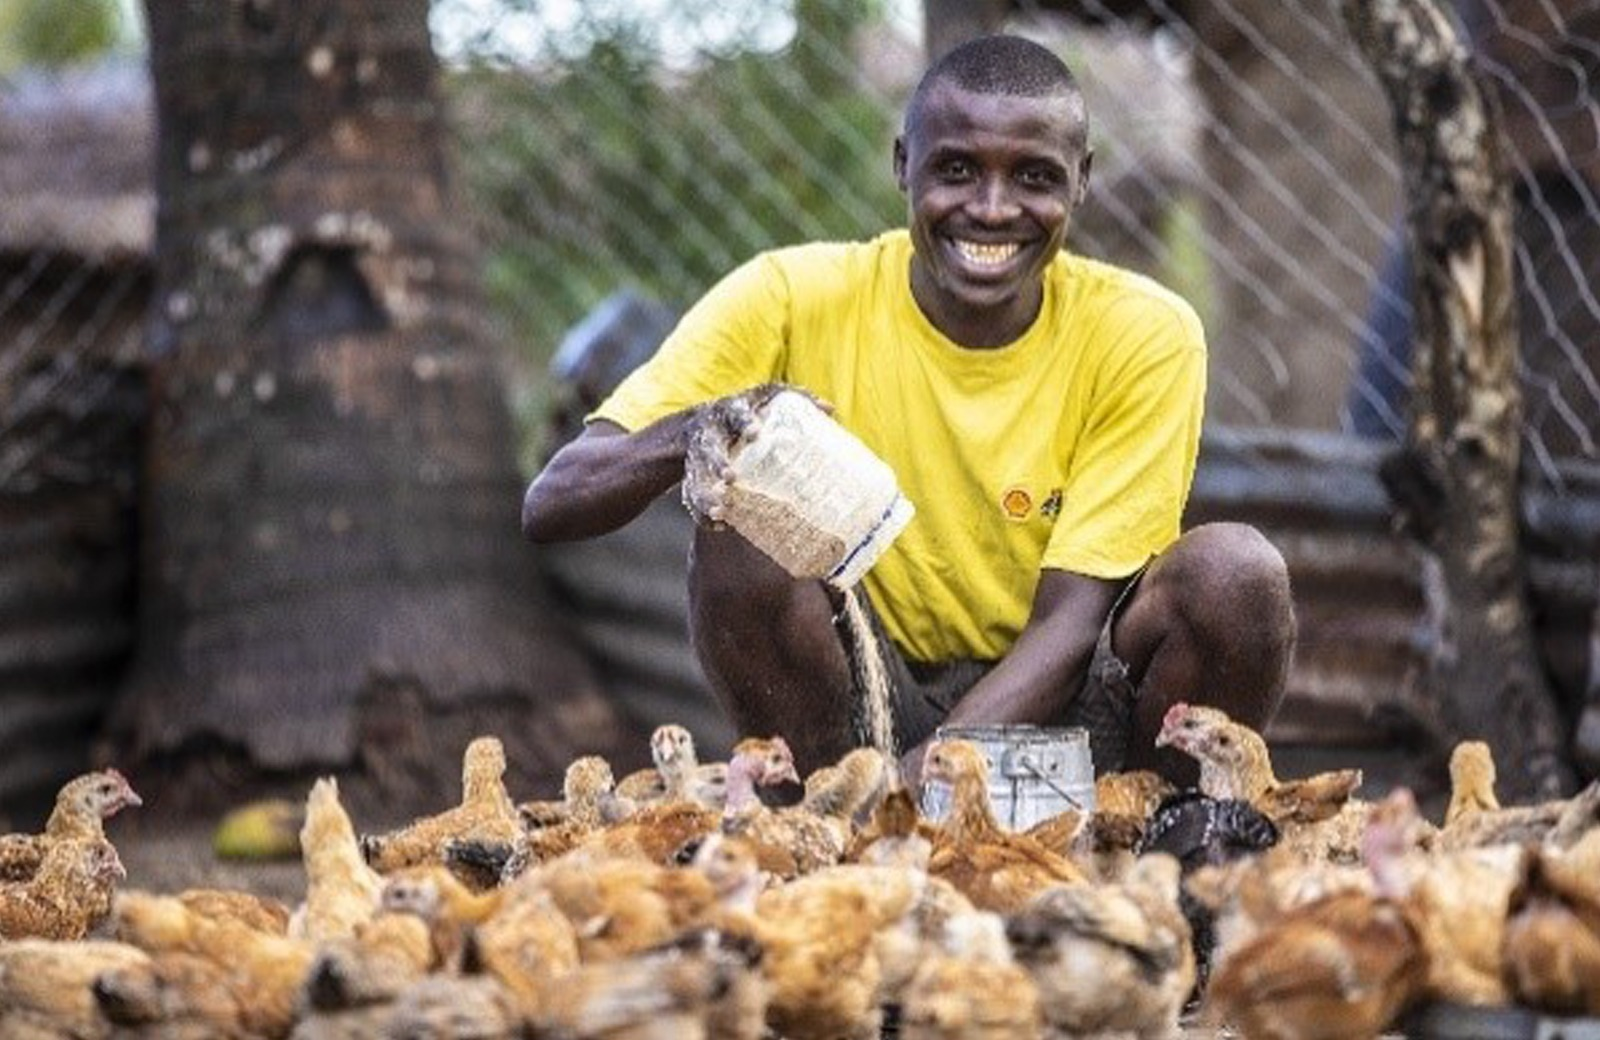 Omar, a member of the Umoja poultry group, feeding seeds to chicks